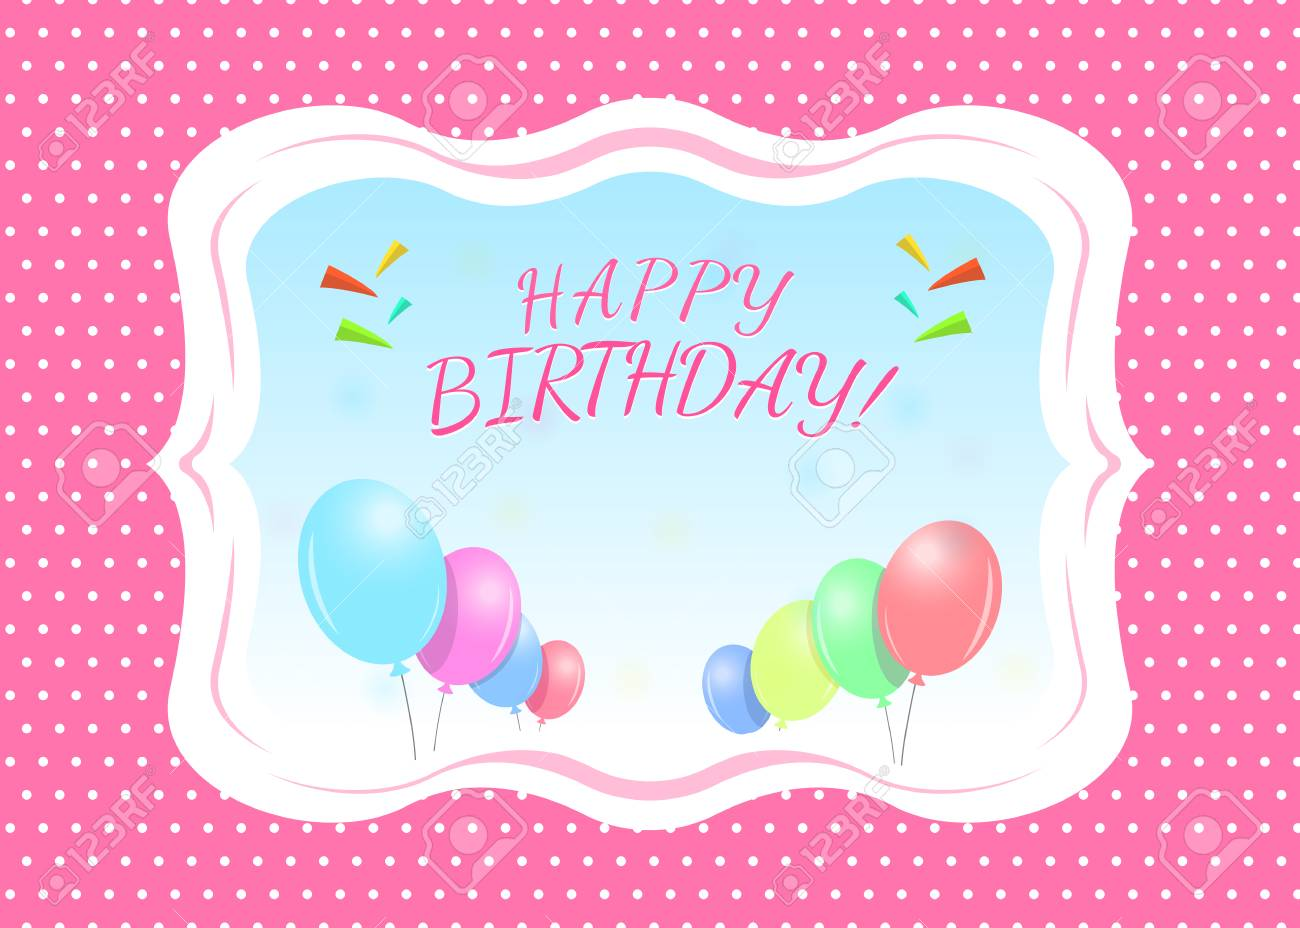 Outstanding Happy Birthday Greeting Card Template With A Place For Name Personalised Birthday Cards Akebfashionlily Jamesorg